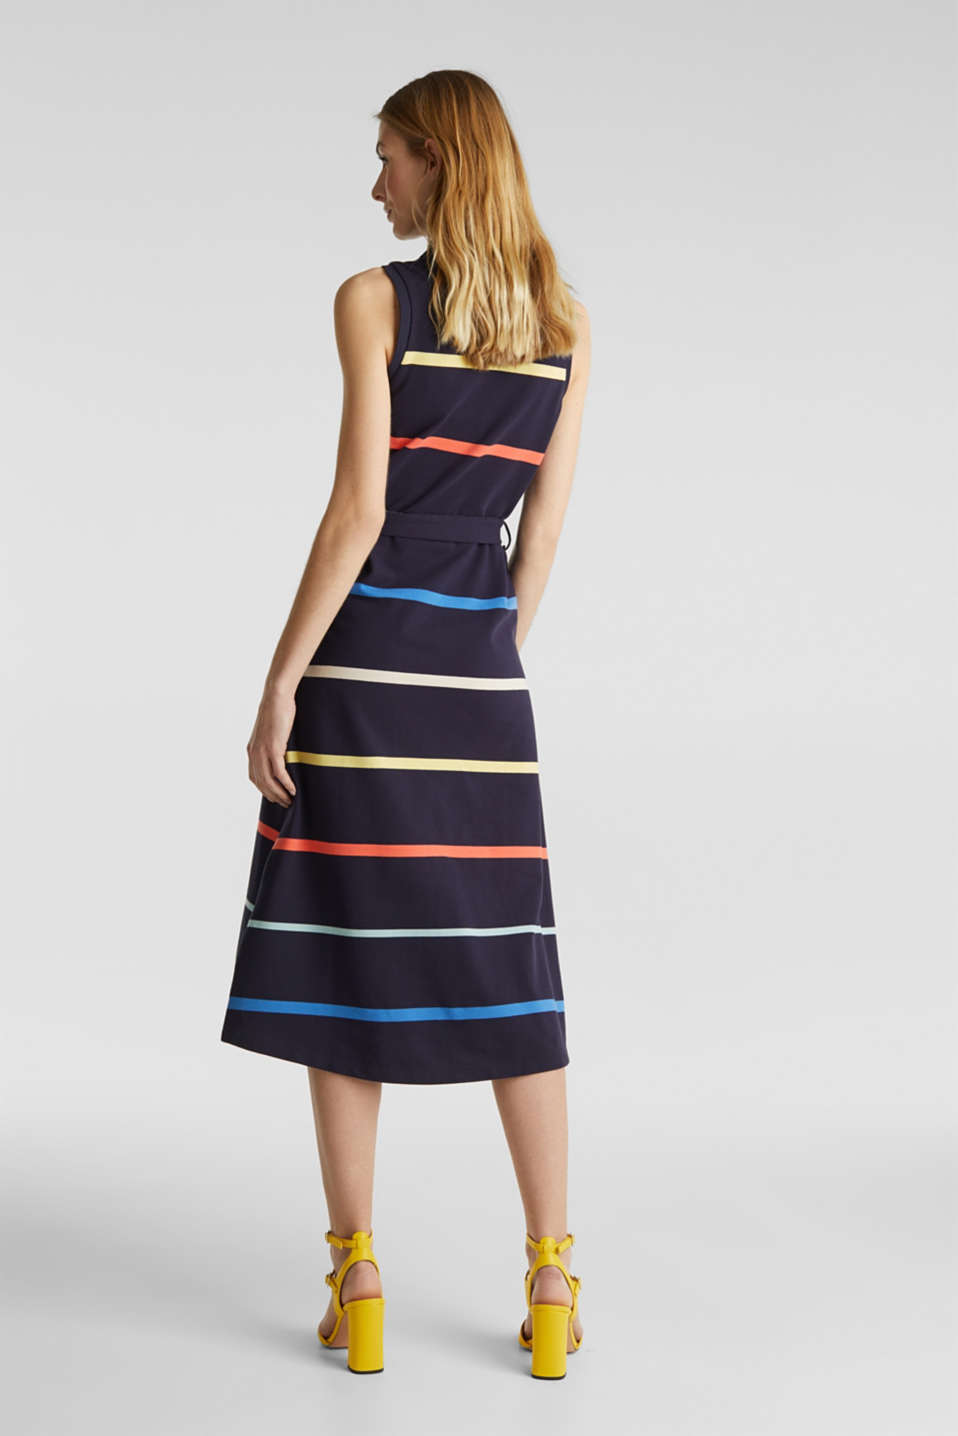 Striped polo dress in midi length, NAVY, detail image number 1